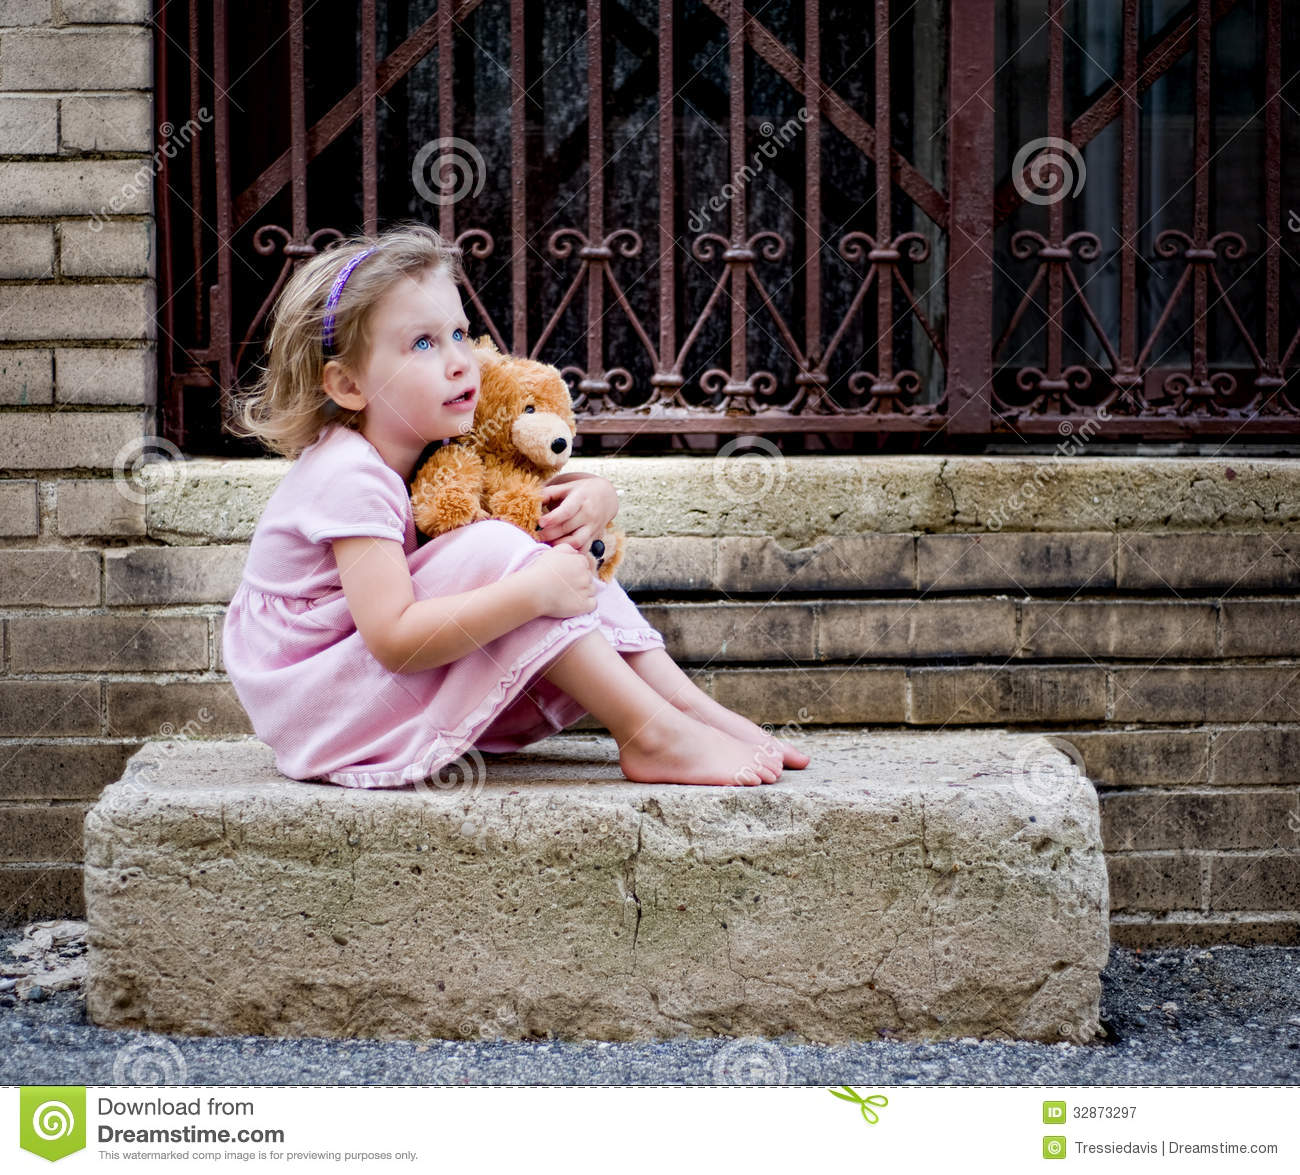 474e371b58 Happy little girl wearing pink dress sitting on concrete step holding teddy  bear and looking up